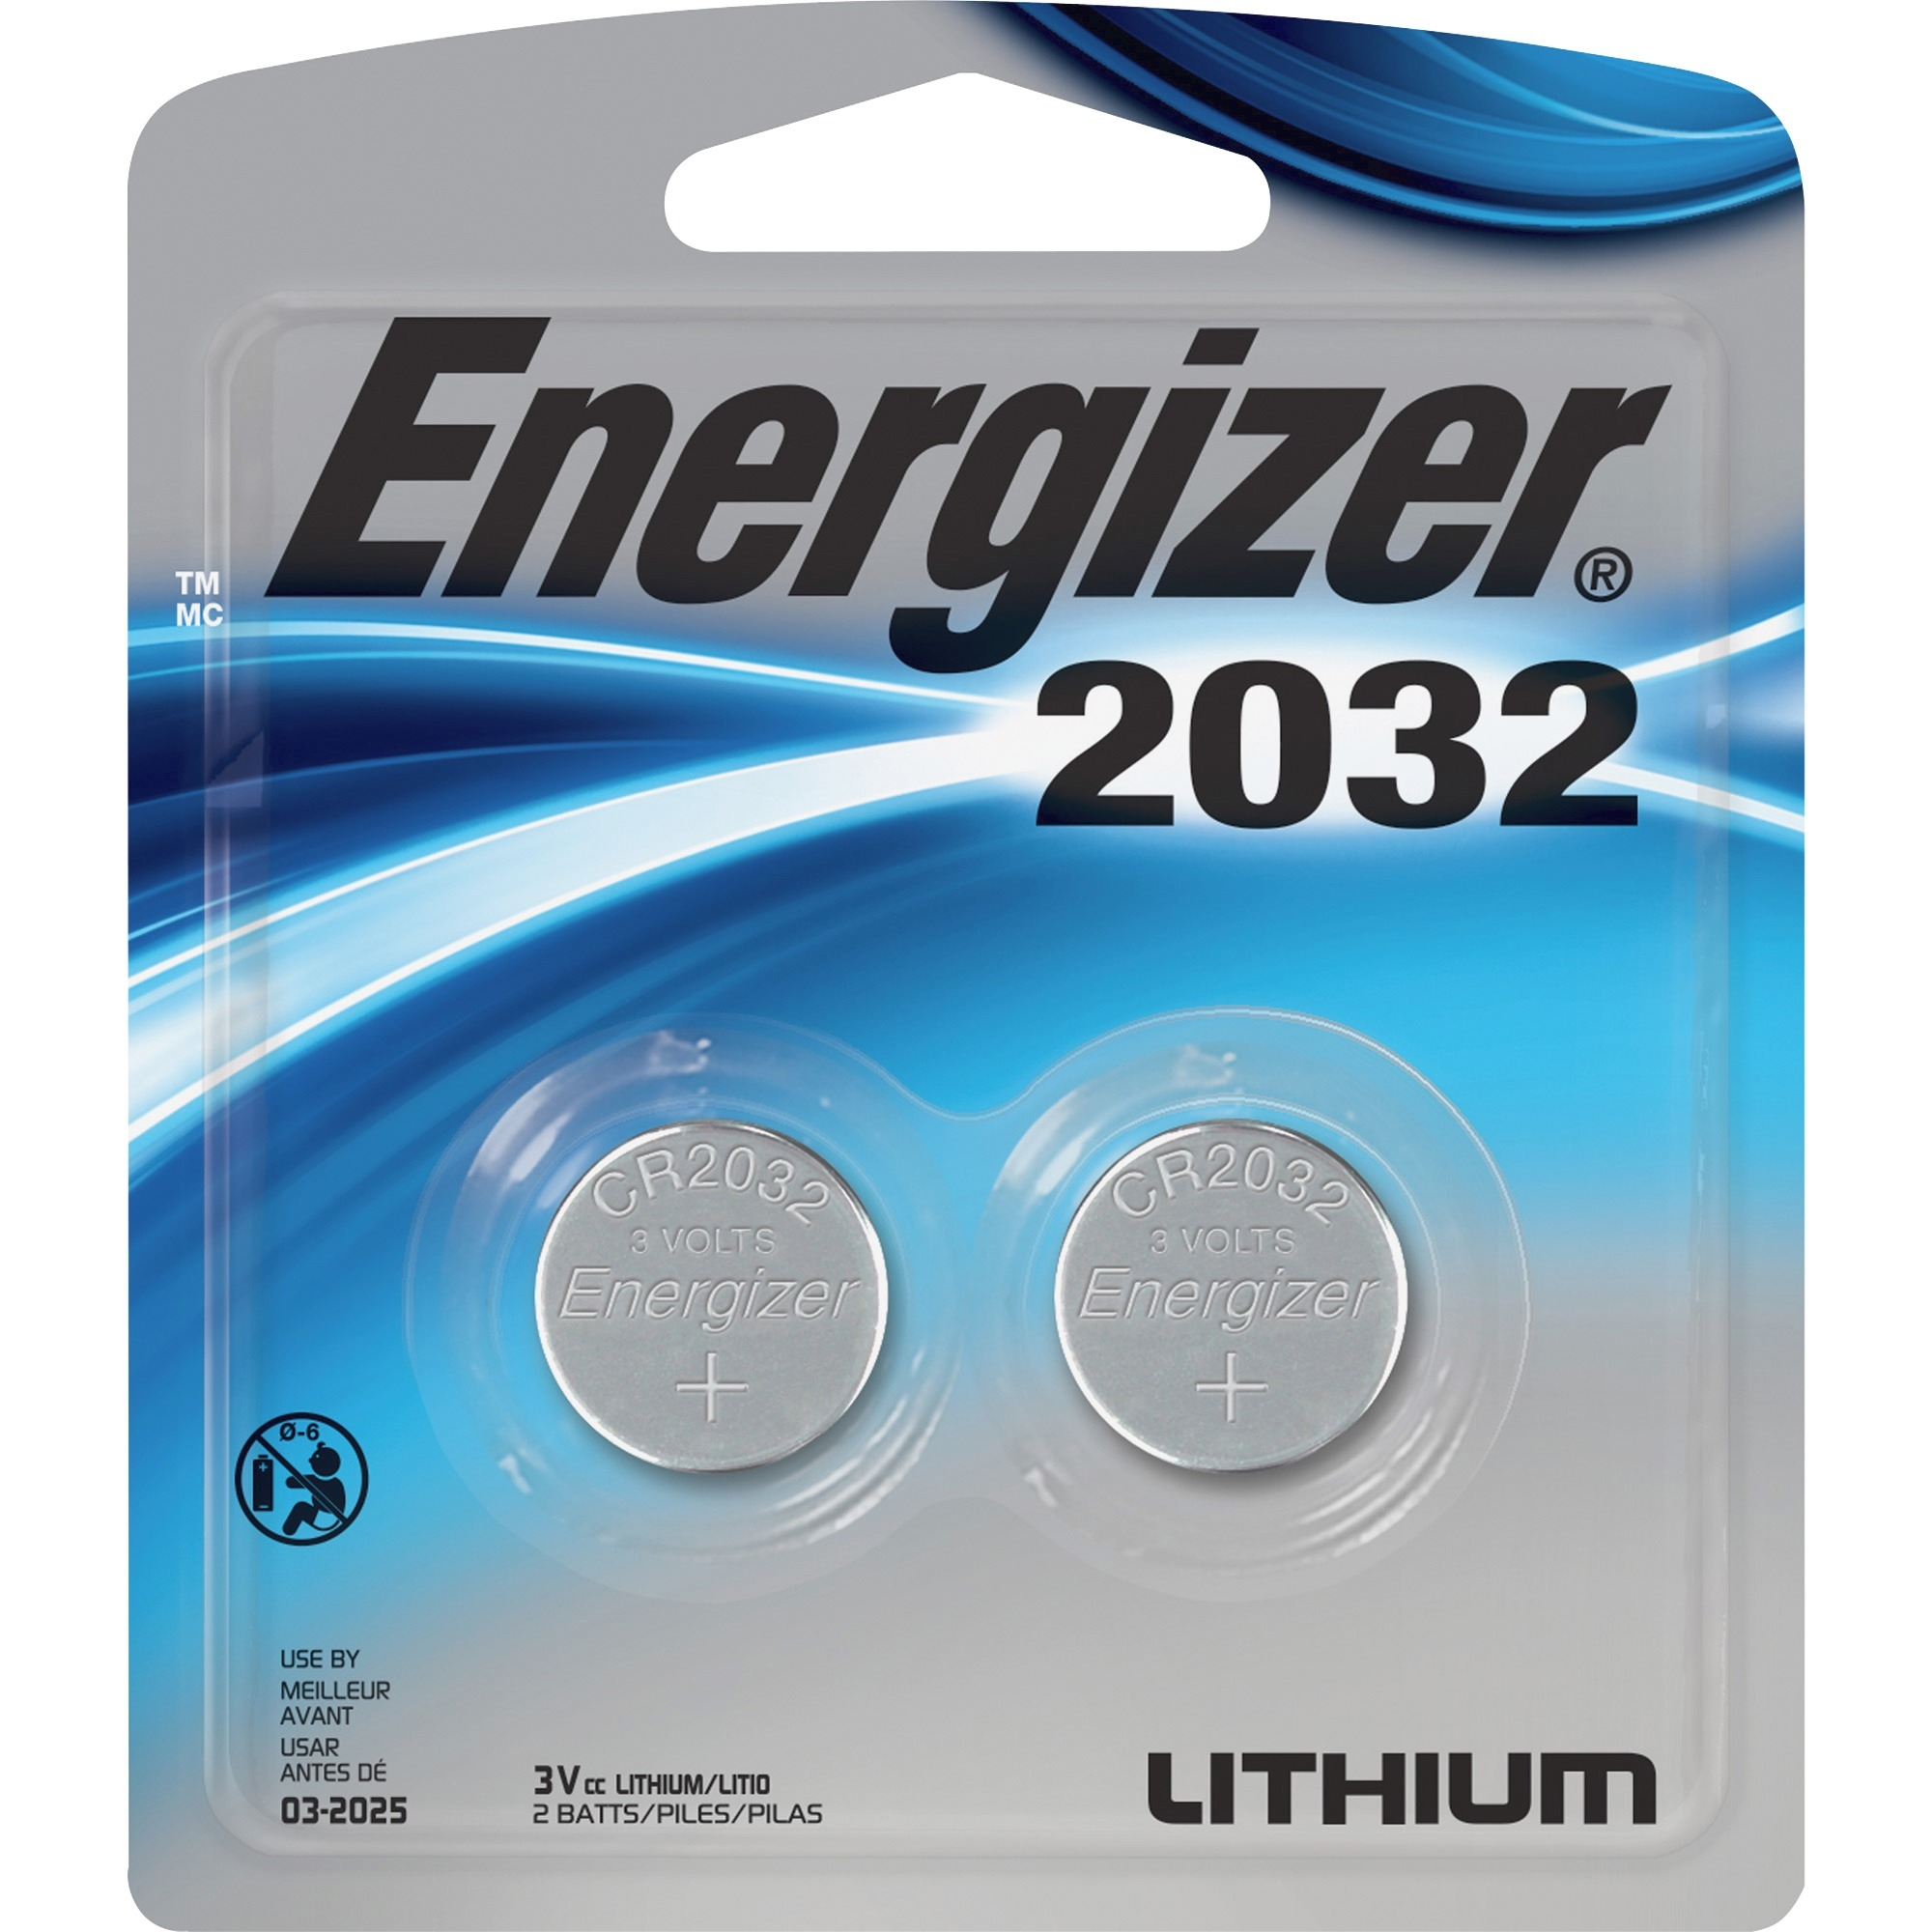 Energizer 2032, 3V, Lithium Button Cell Battery Retail Pack - 2-Pack